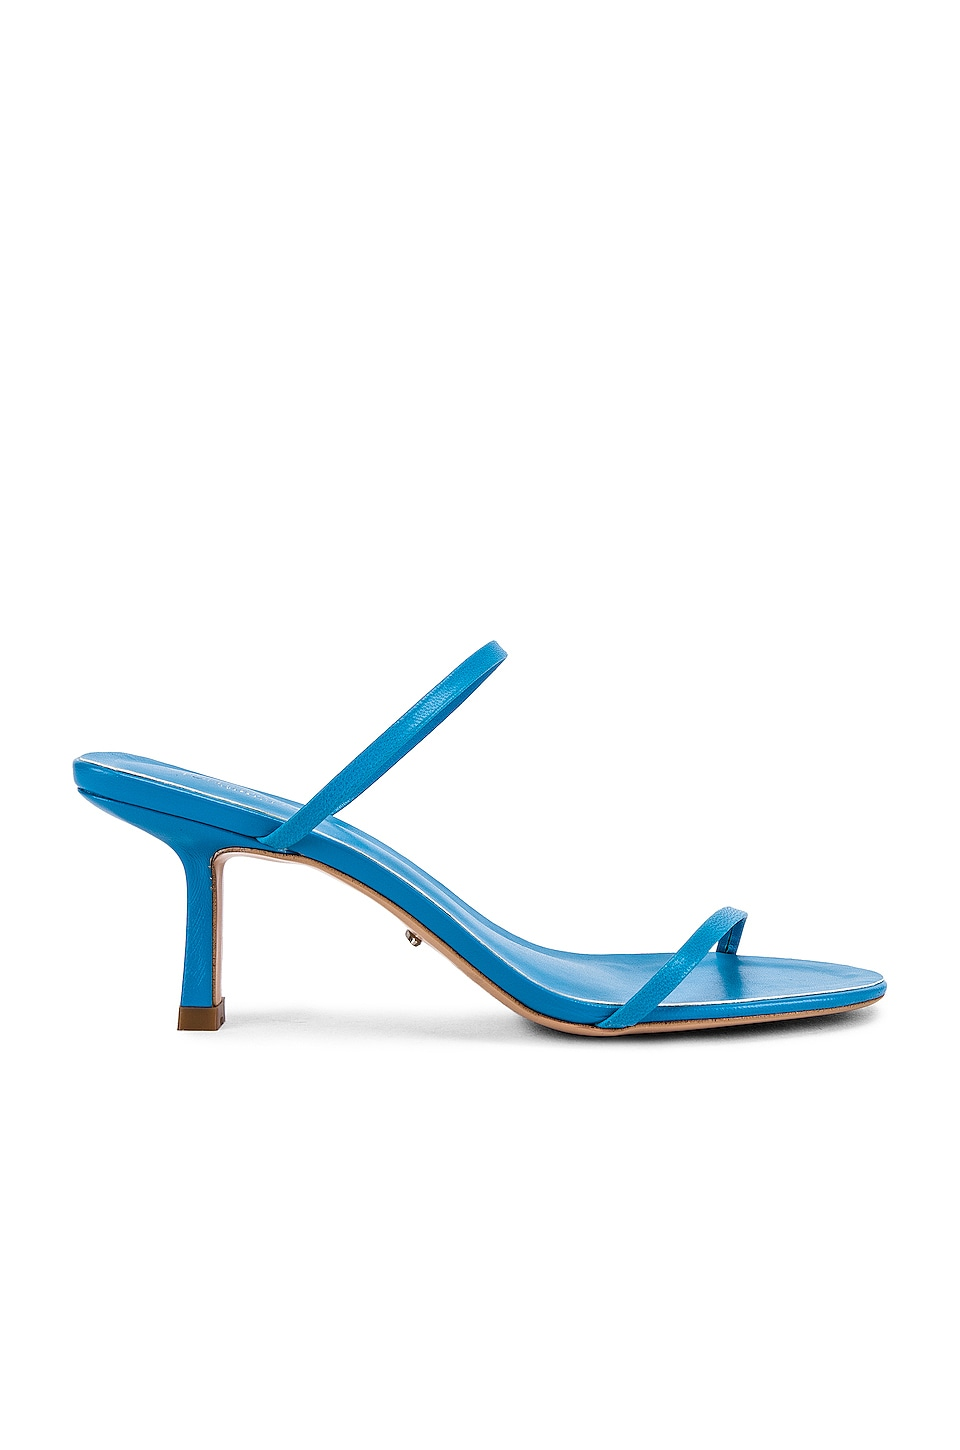 Tony Bianco Camille Sandal in Blue